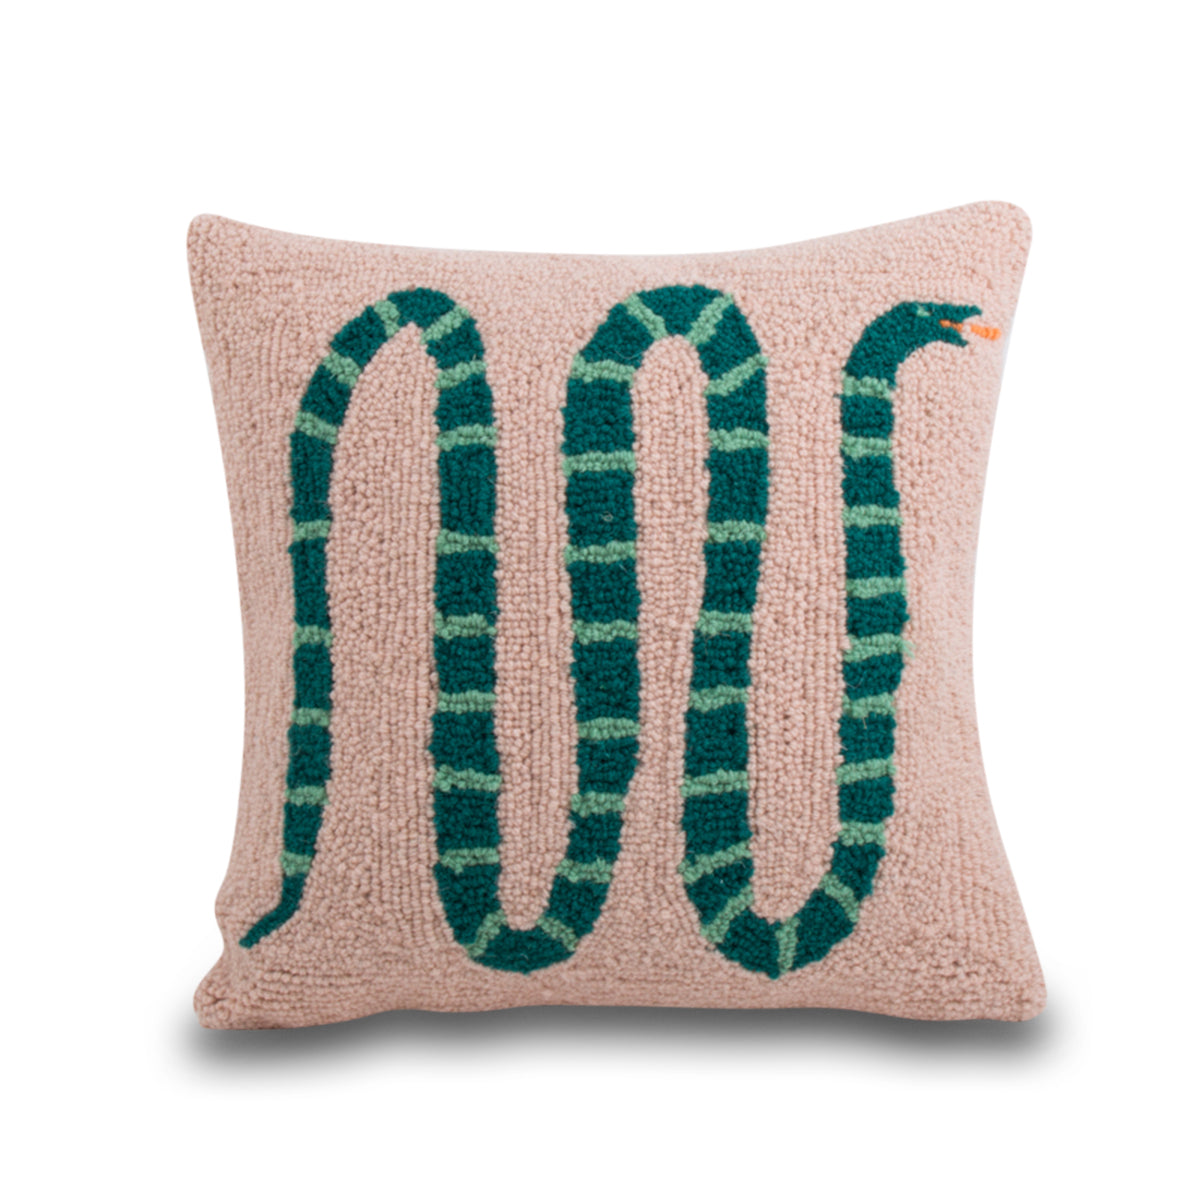 Garden of Eden Pillow